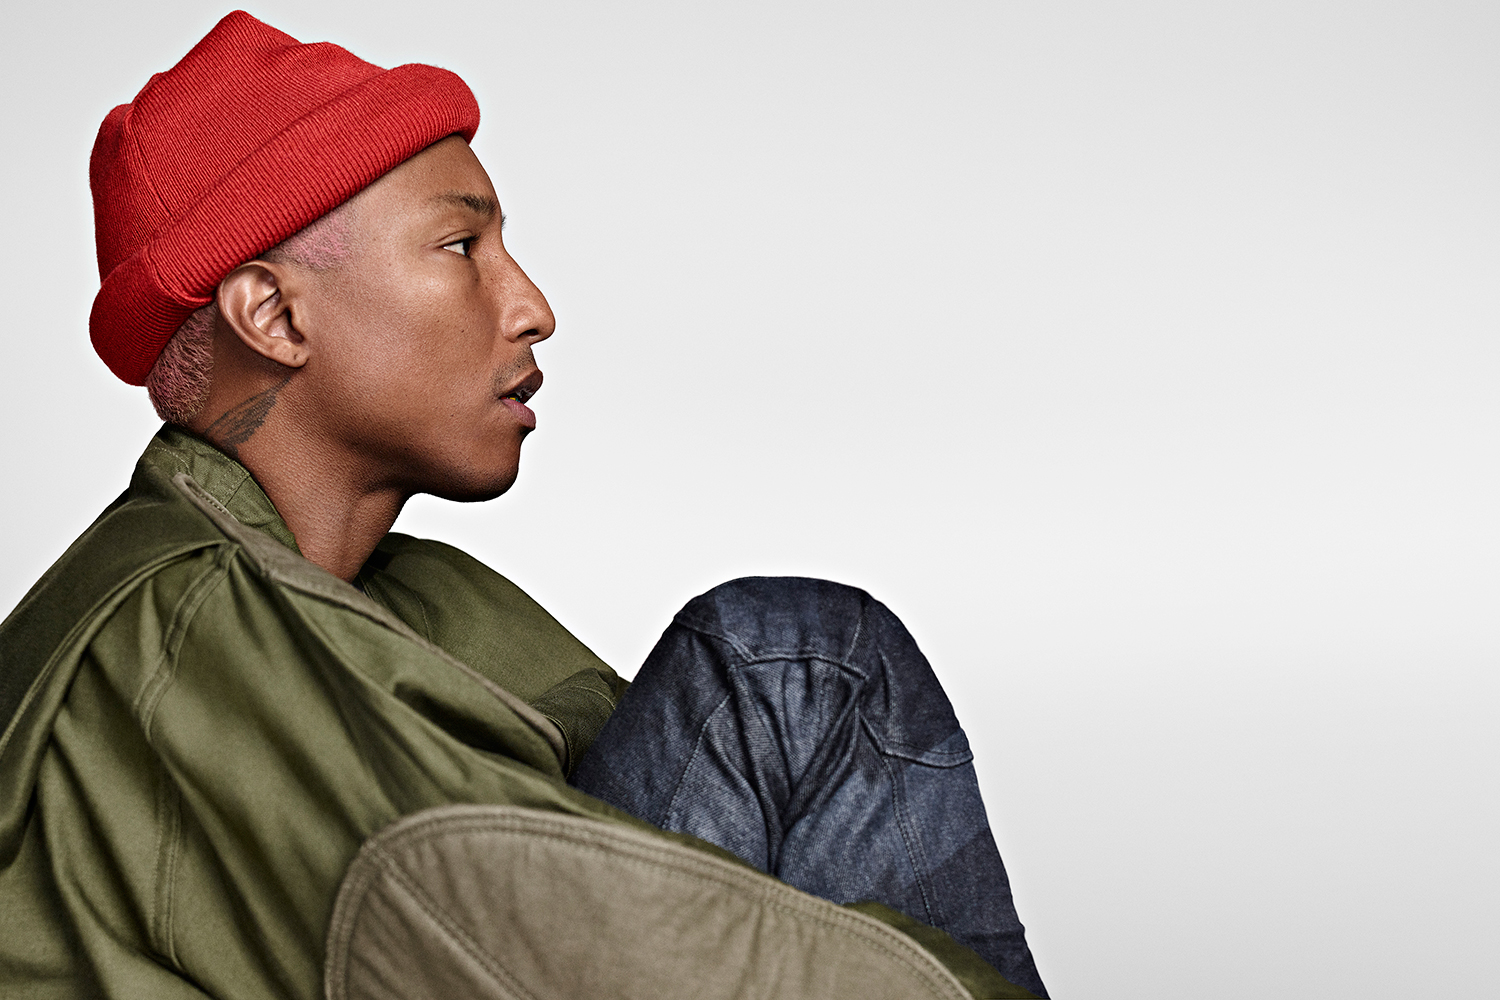 G star raw fall winter 2016 campaign featuring pharrell williams hypebeast - Pharrell williams design ...